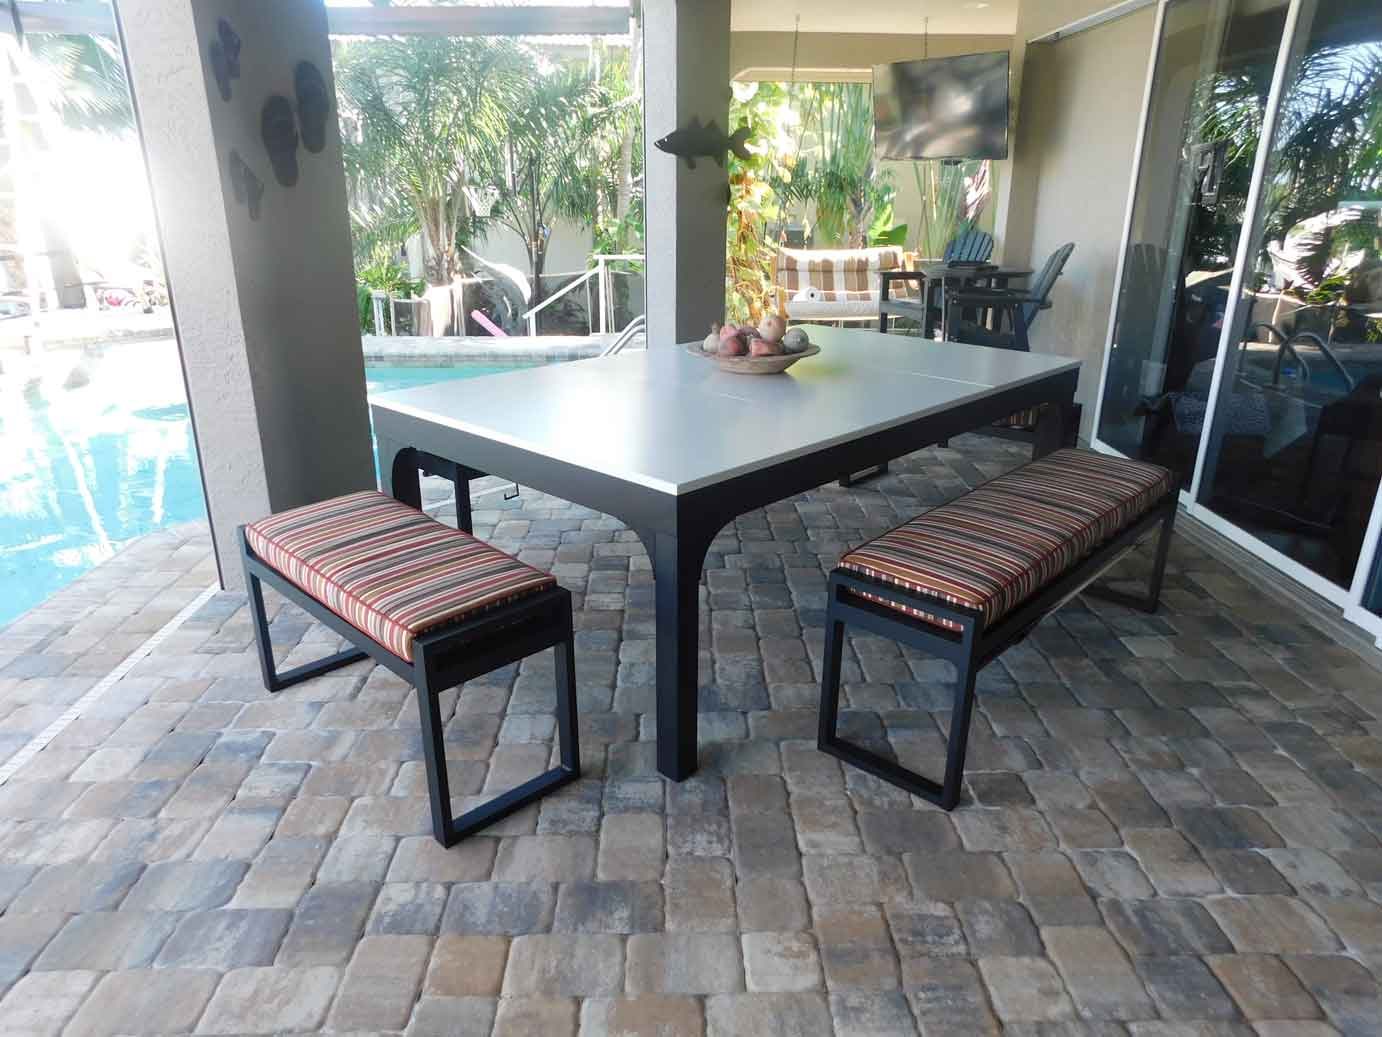 Balcony outdoor pool table with dining conversion top and all weather benches by R&R Outdoors All Weather Billiards